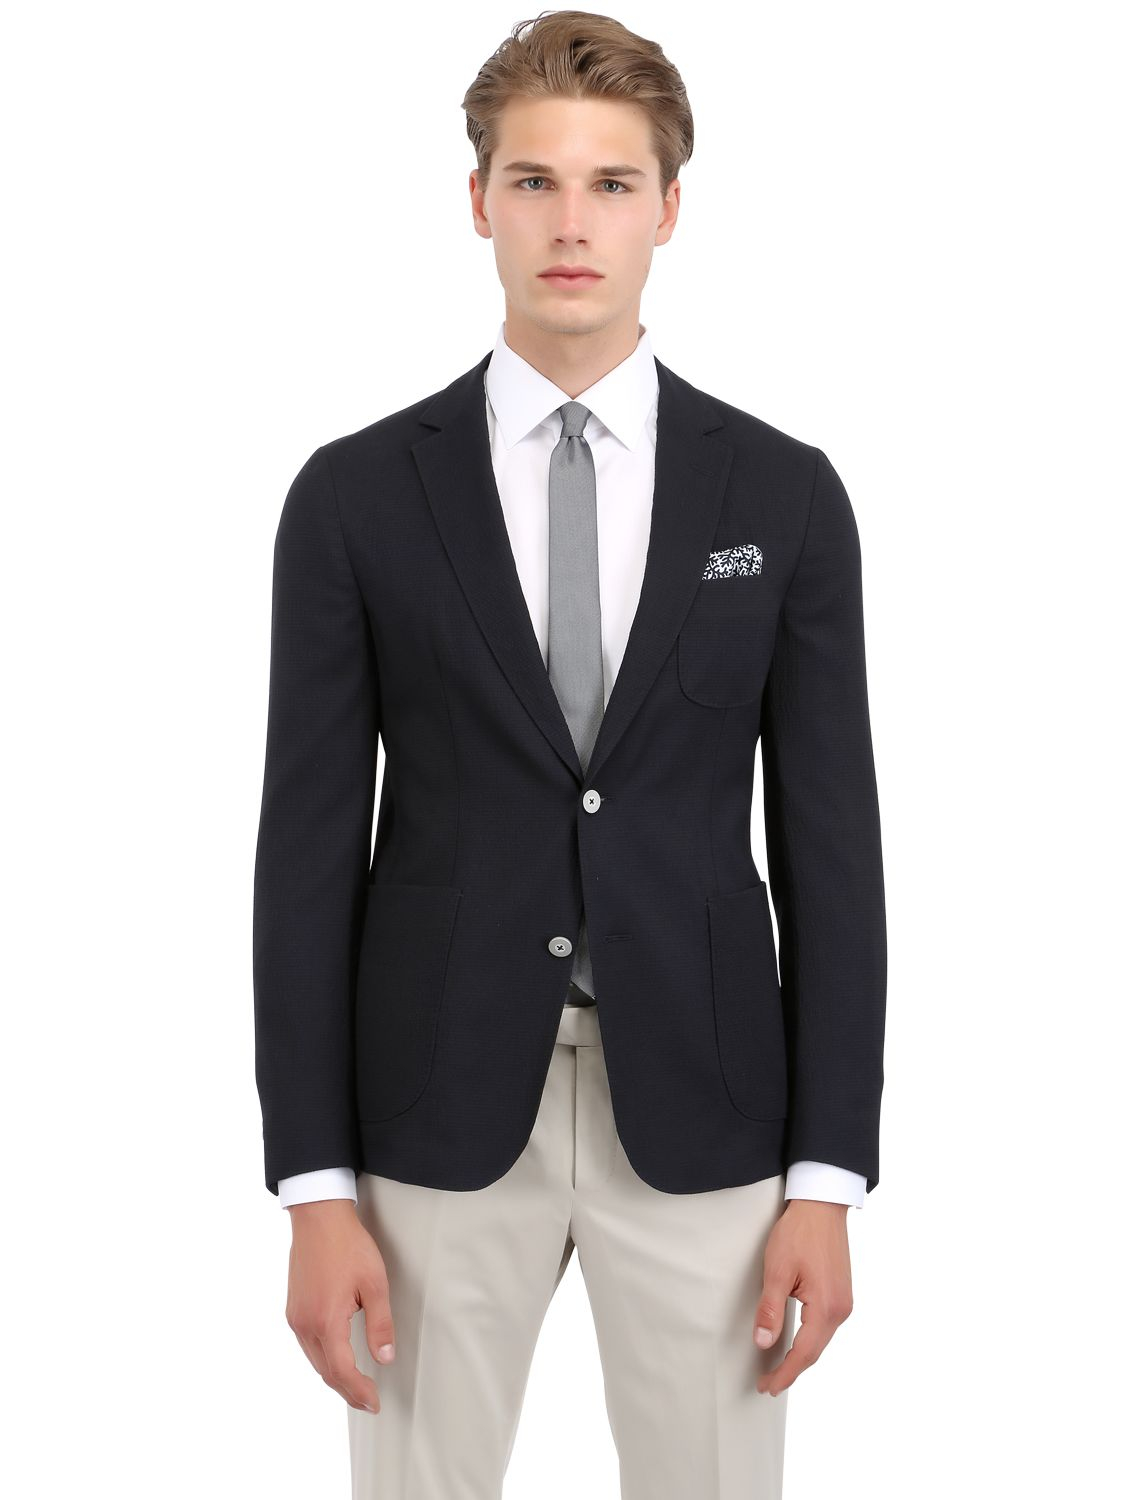 lyst z zegna deconstructed seersucker jacket in blue for men. Black Bedroom Furniture Sets. Home Design Ideas